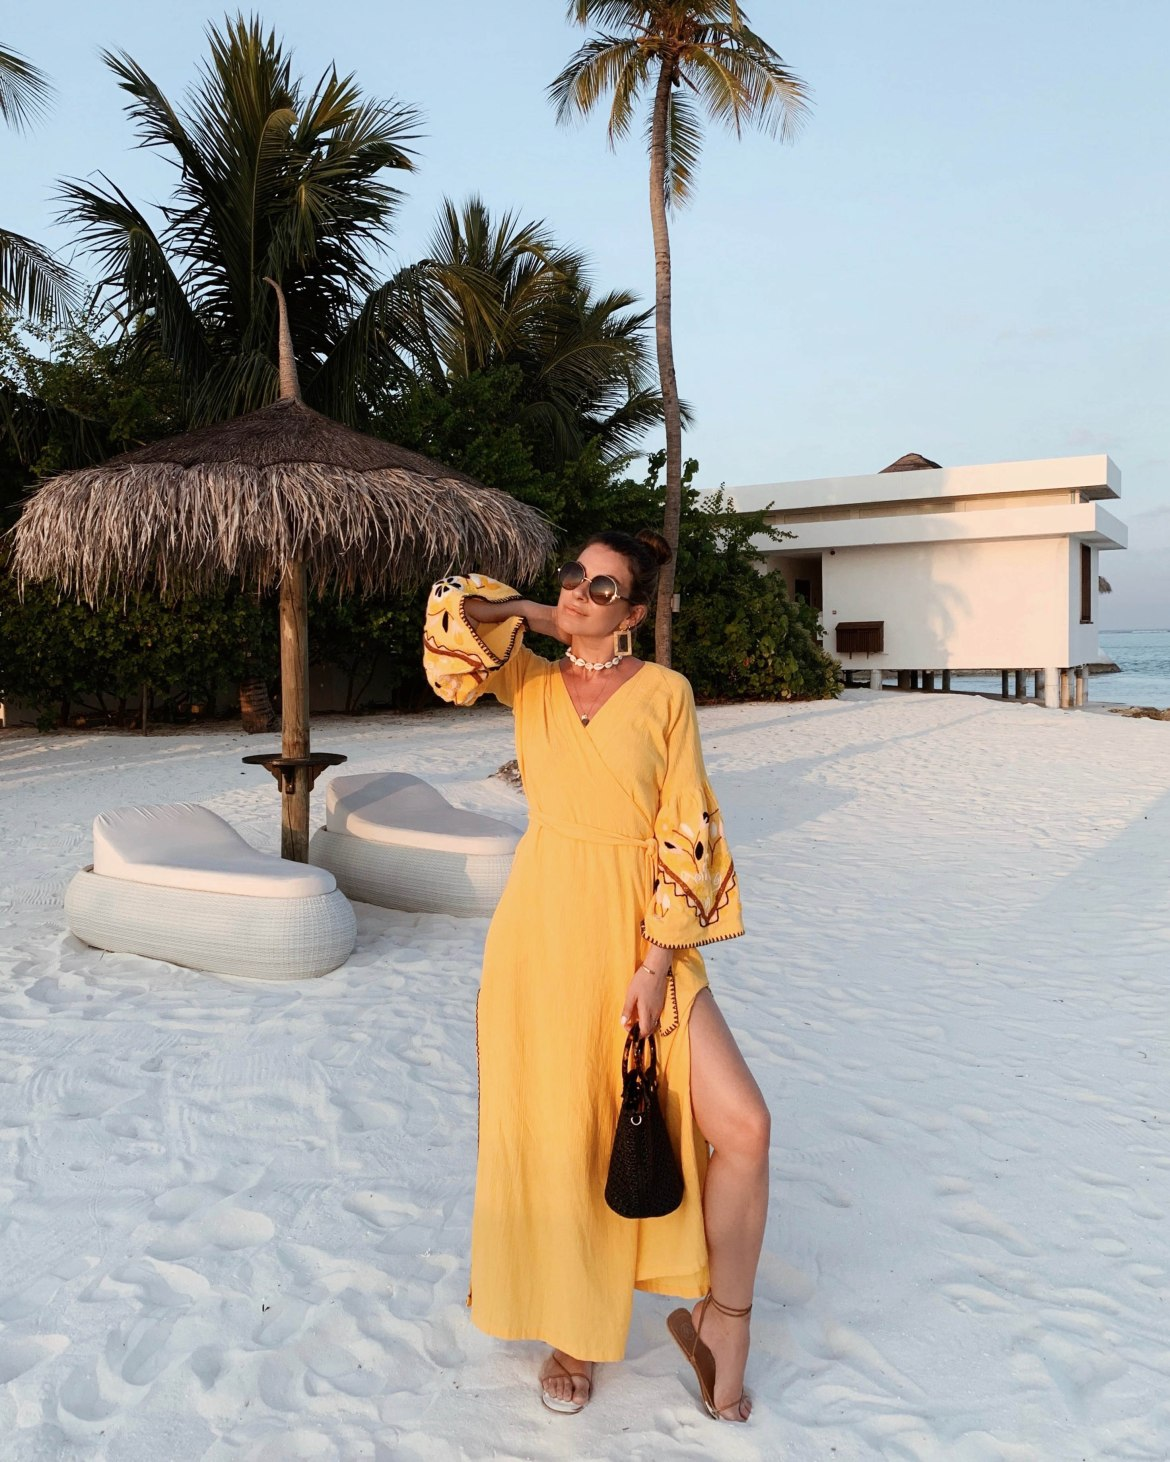 Maldives outfit